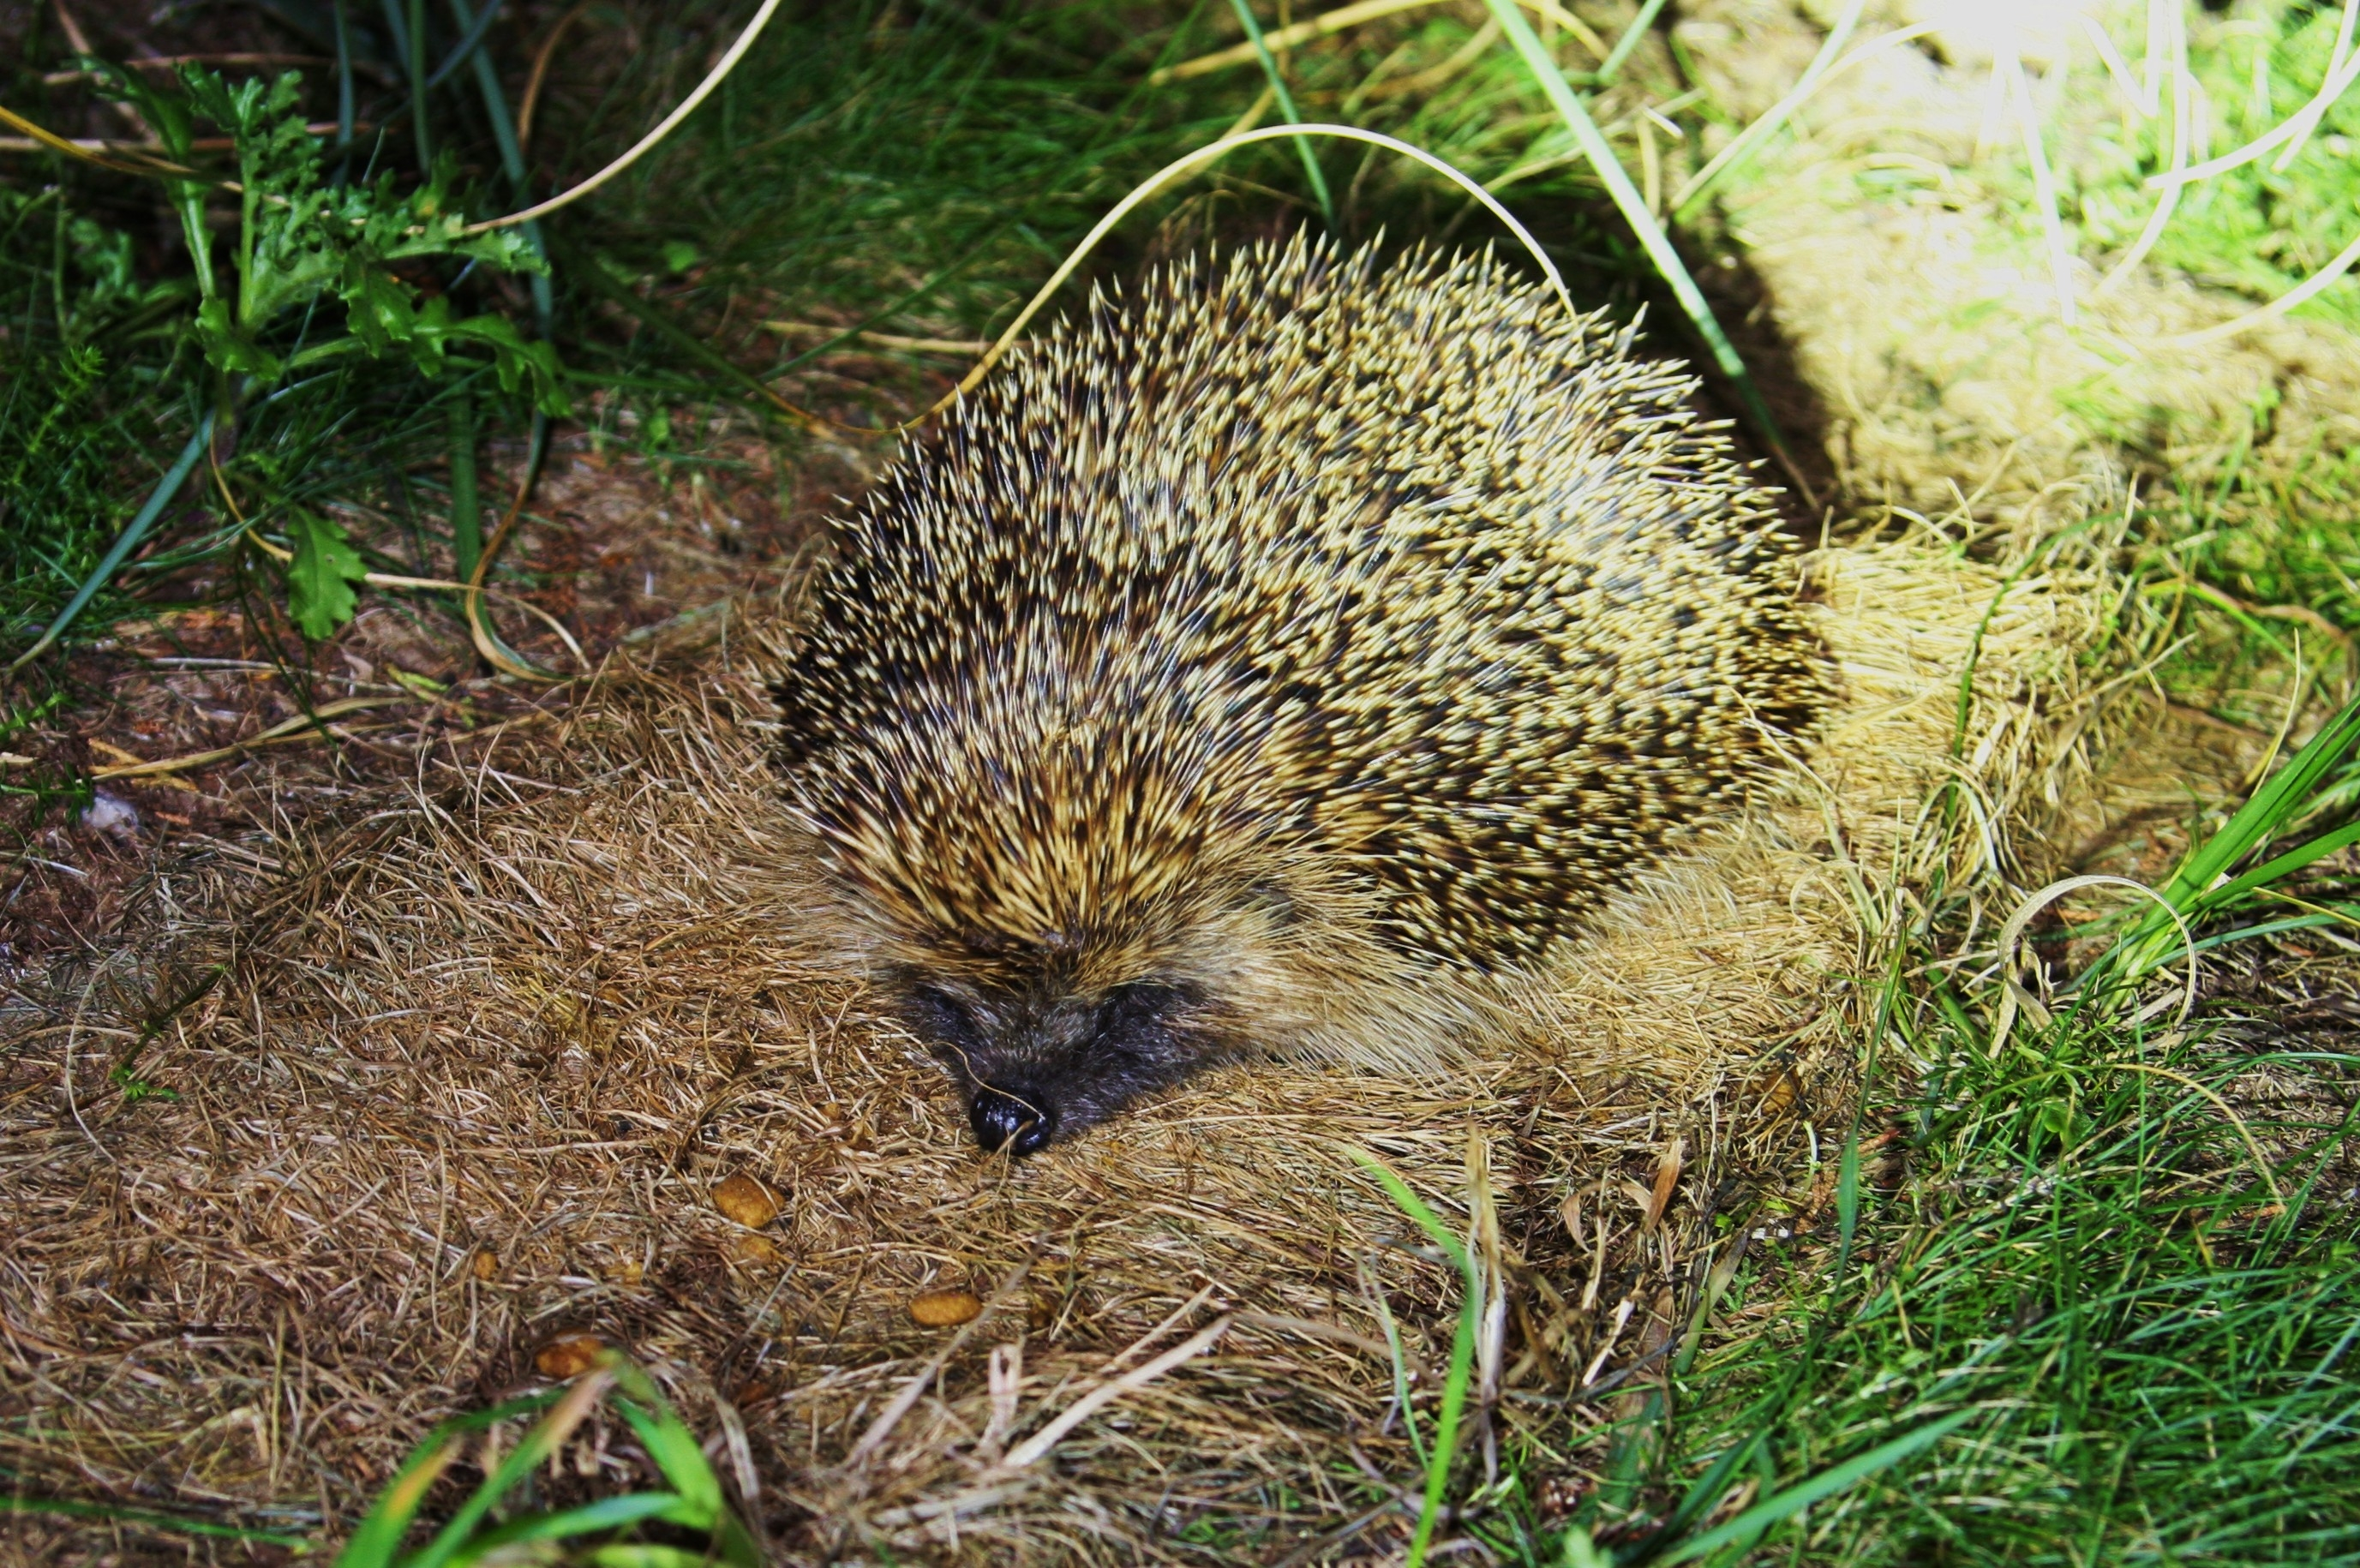 Hedgehog (2). Photo by Miranda collett